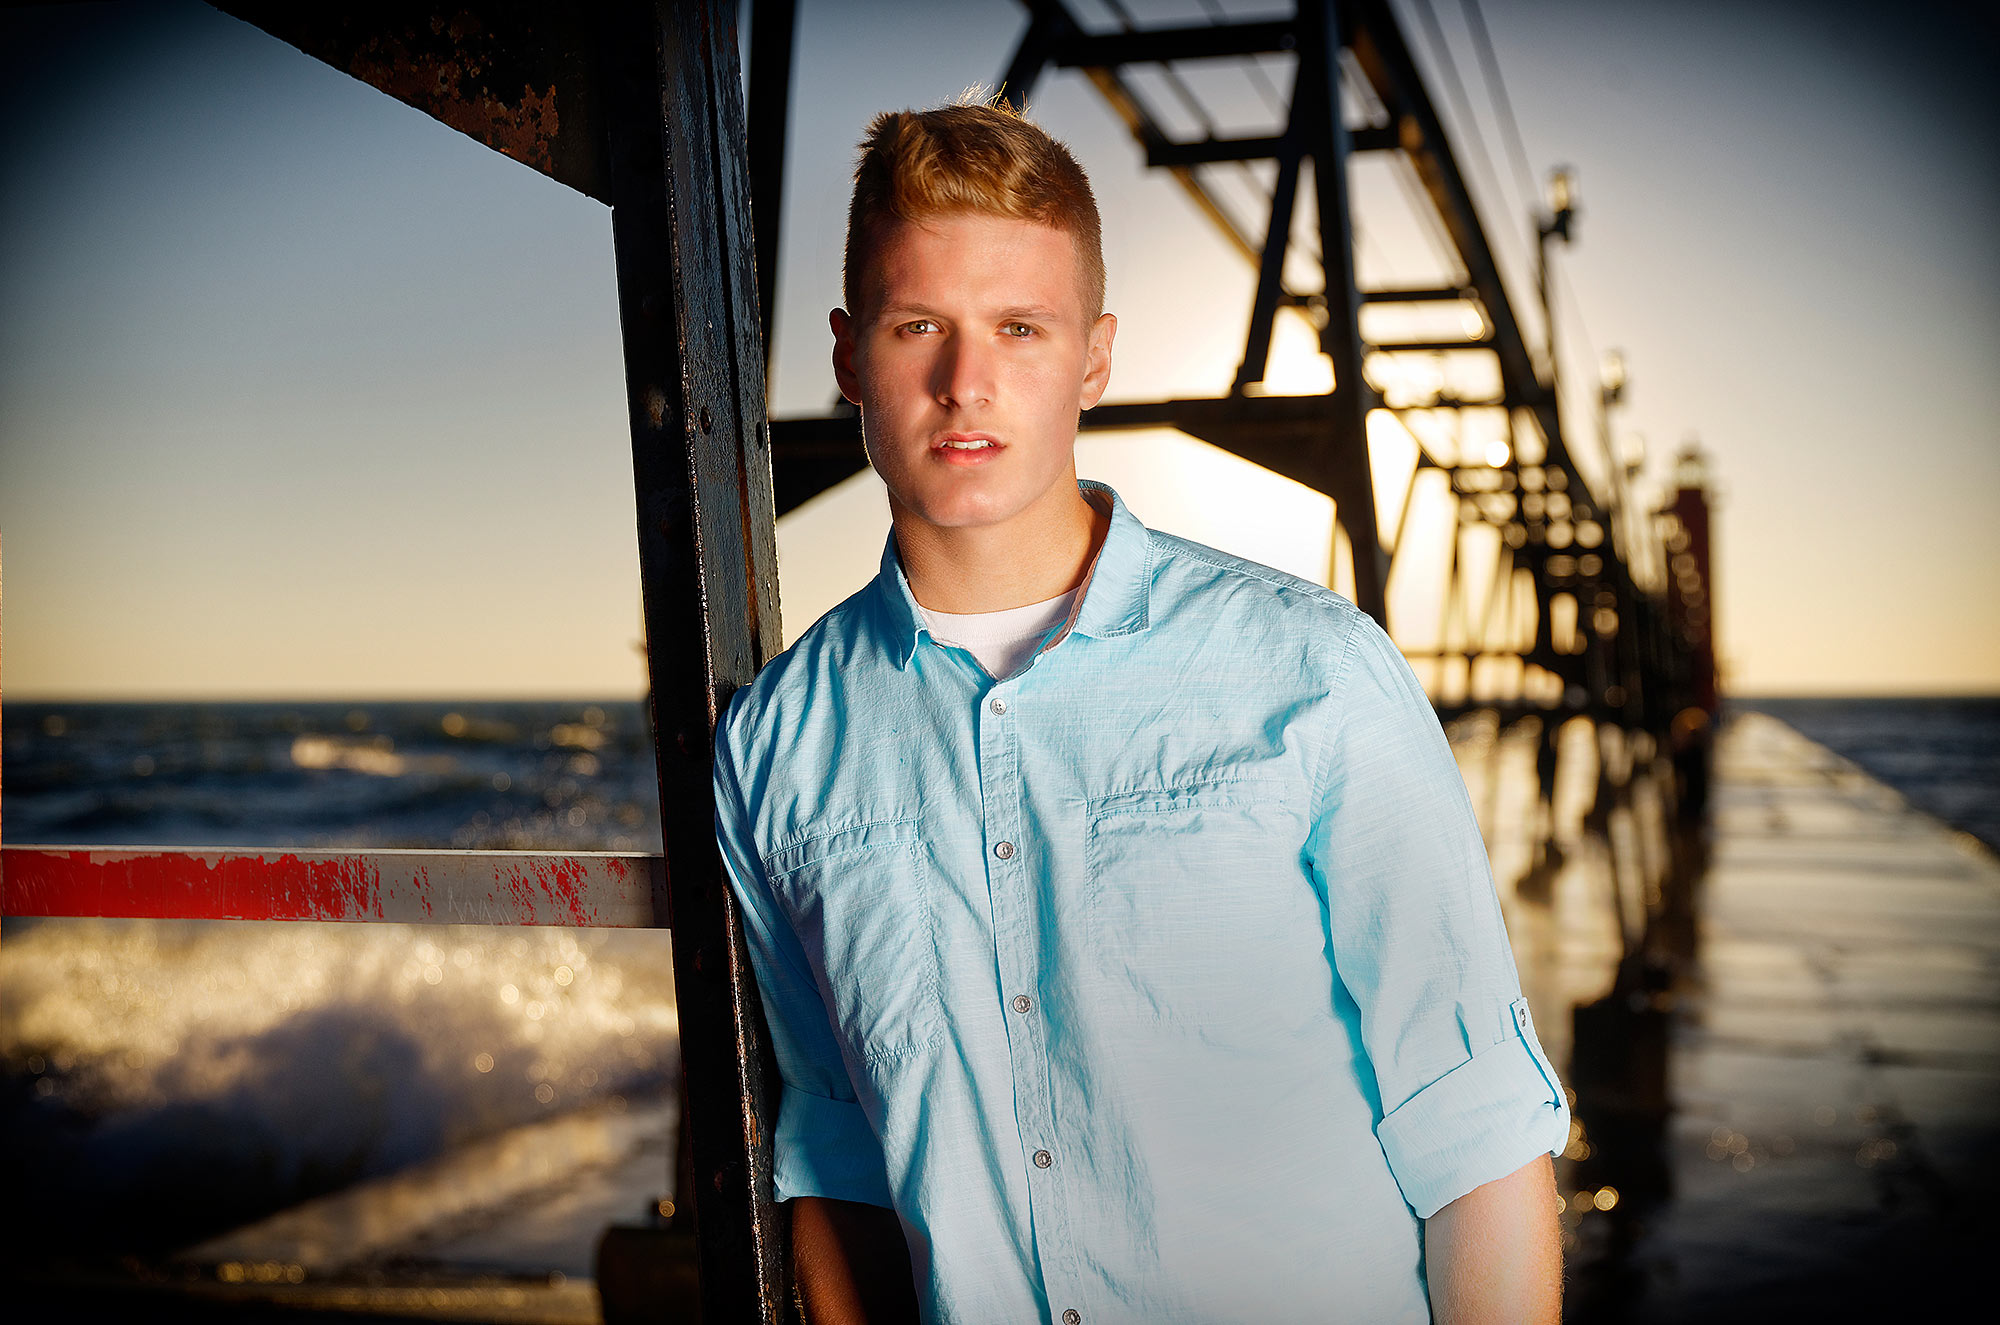 High School Senior Photos for West Michigan